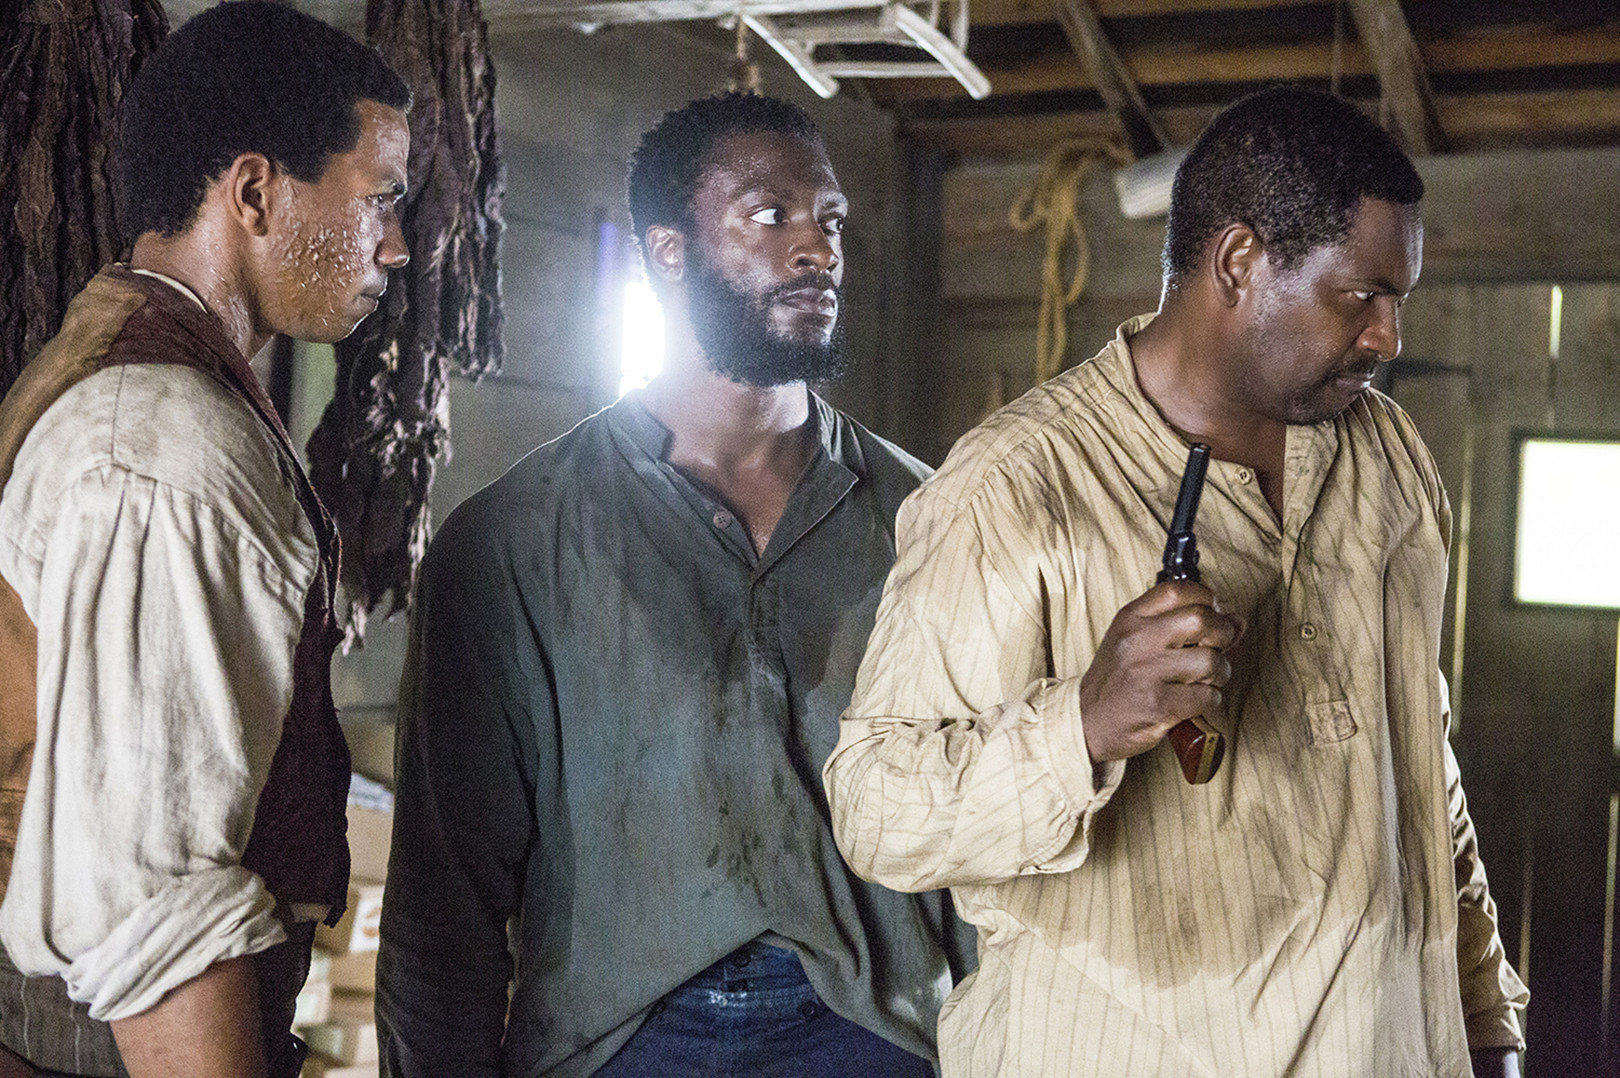 Cato (Alano Miller), Noah (Aldis Hodge), Moses (Mykelti Williamson) Poised For Action